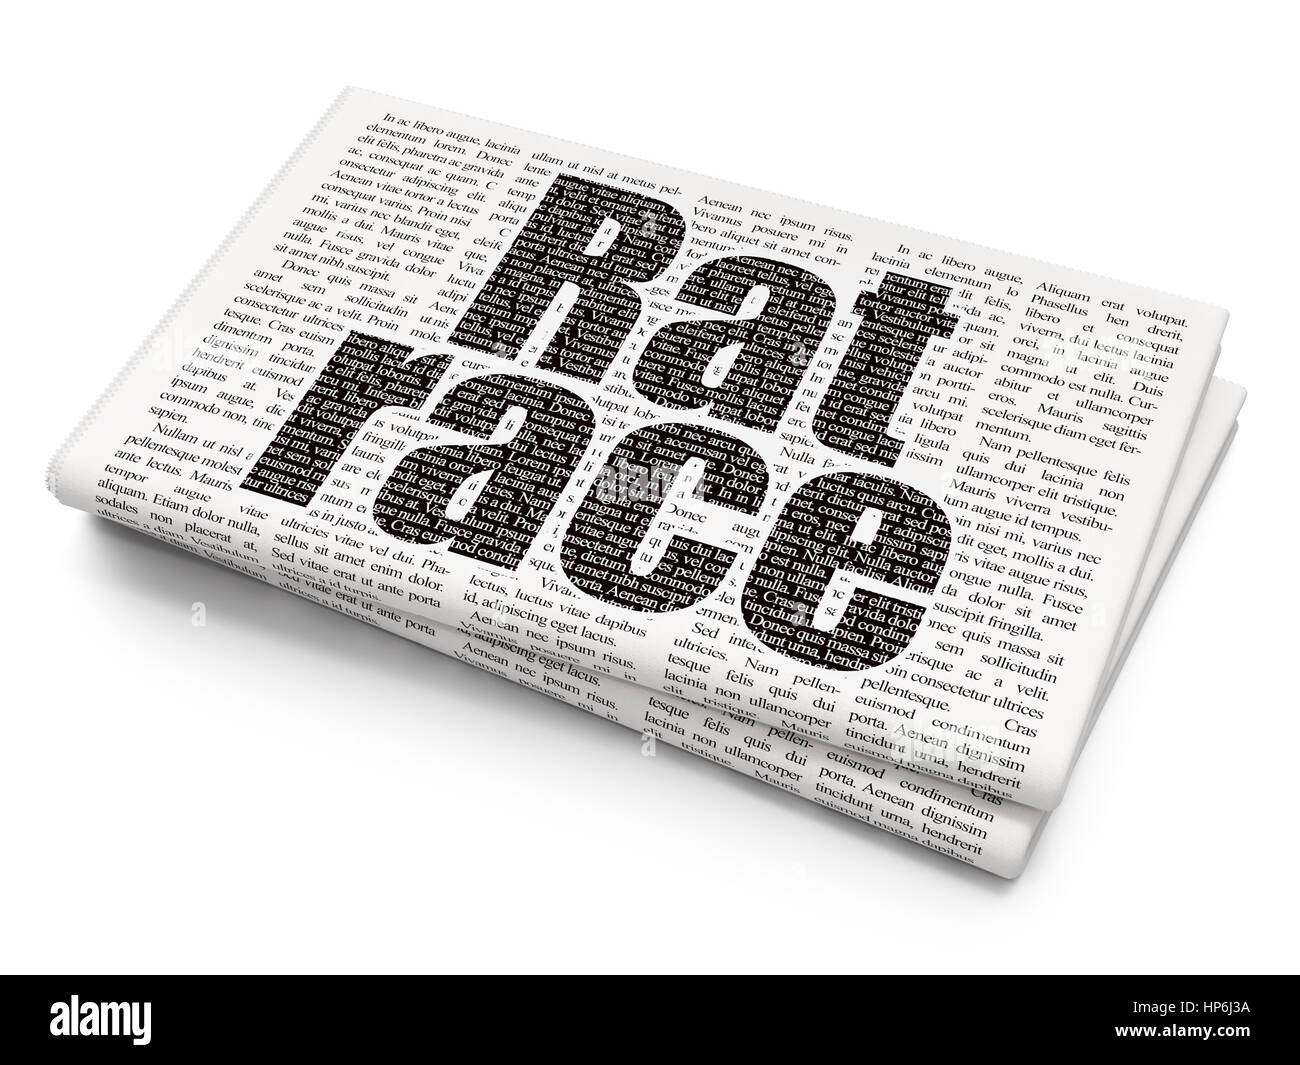 Ra T Vel Politics Concept Pixelated Black Text Rat Race On Newspaper Stock